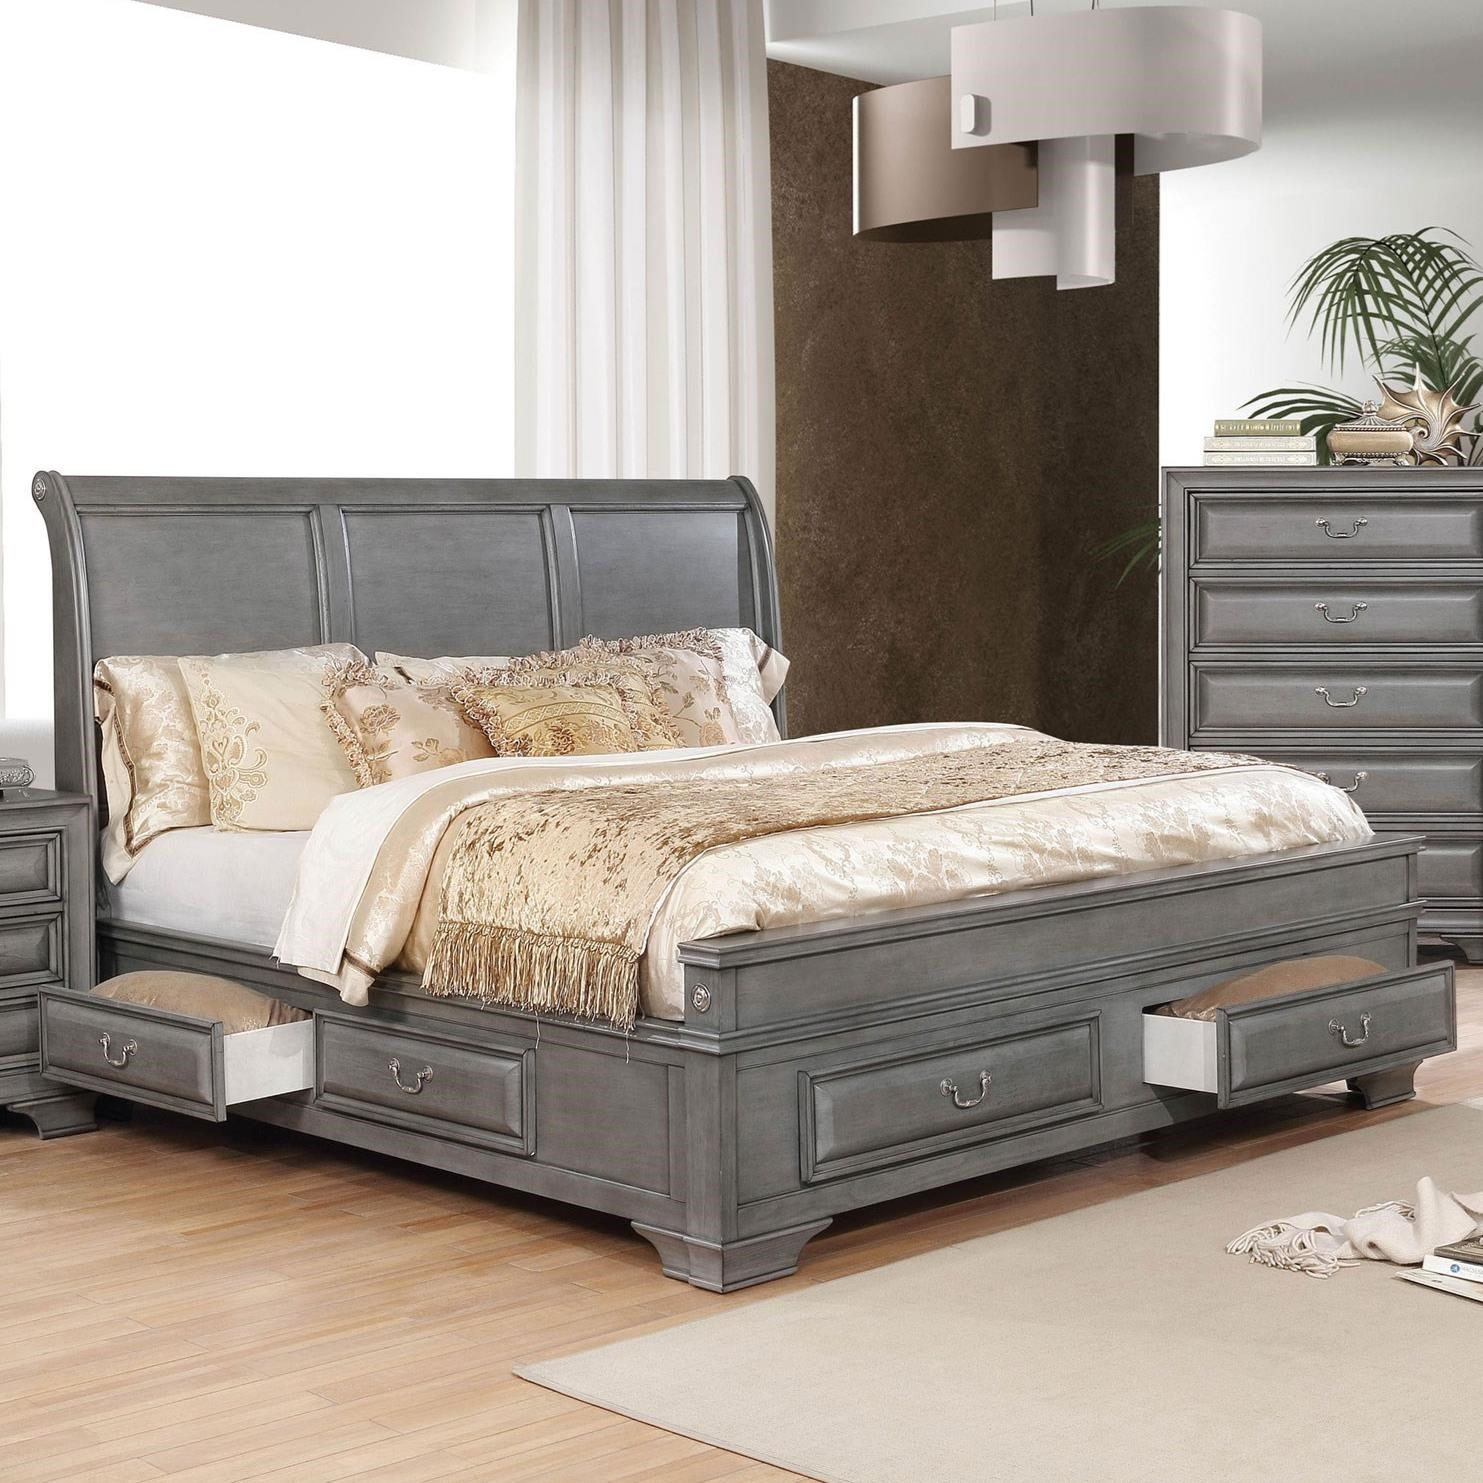 Brandt California King Bed at Household Furniture